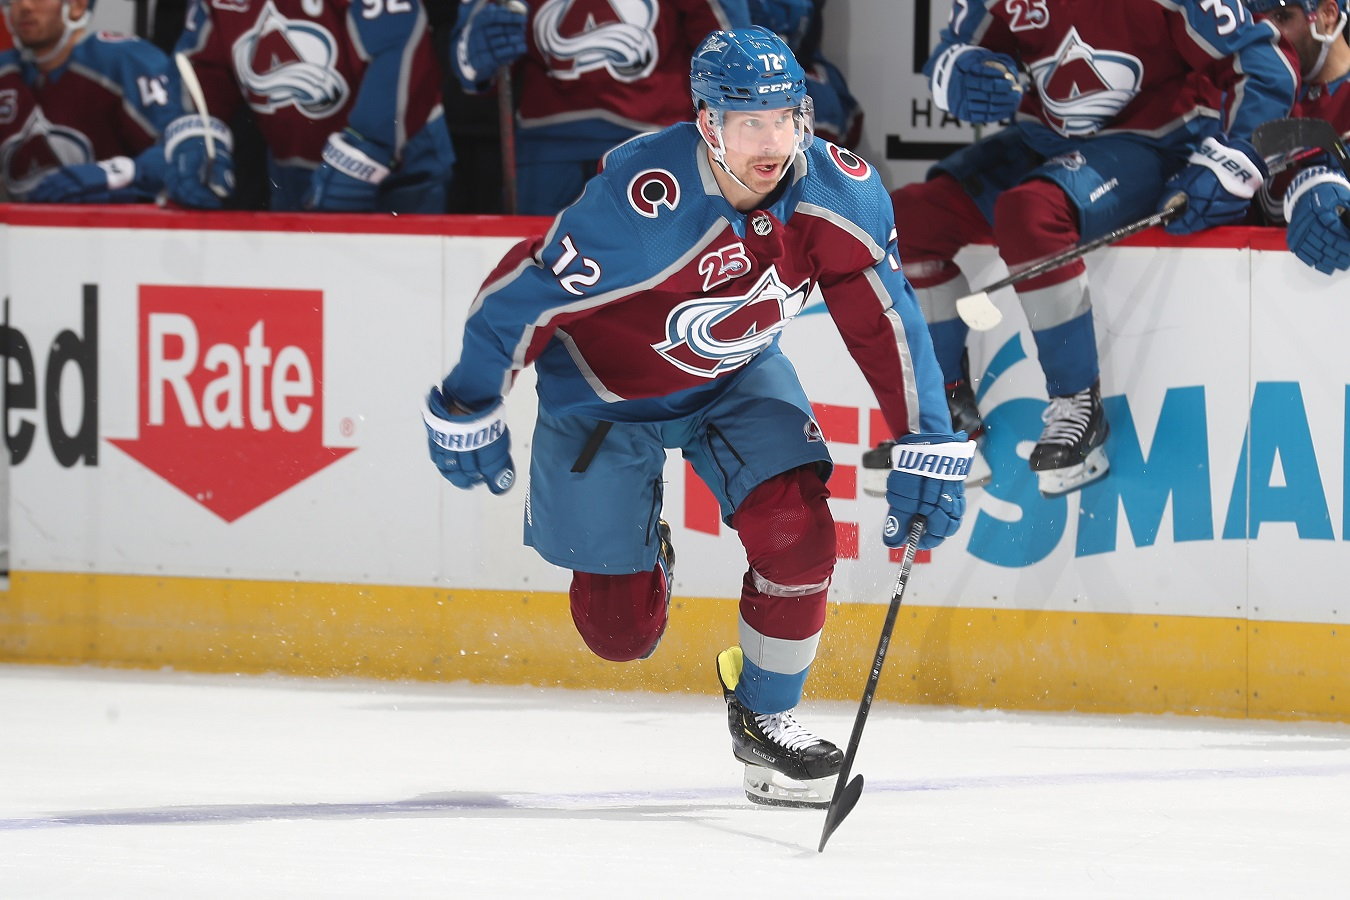 Colorado Avalanche forward Joonas Donskoi